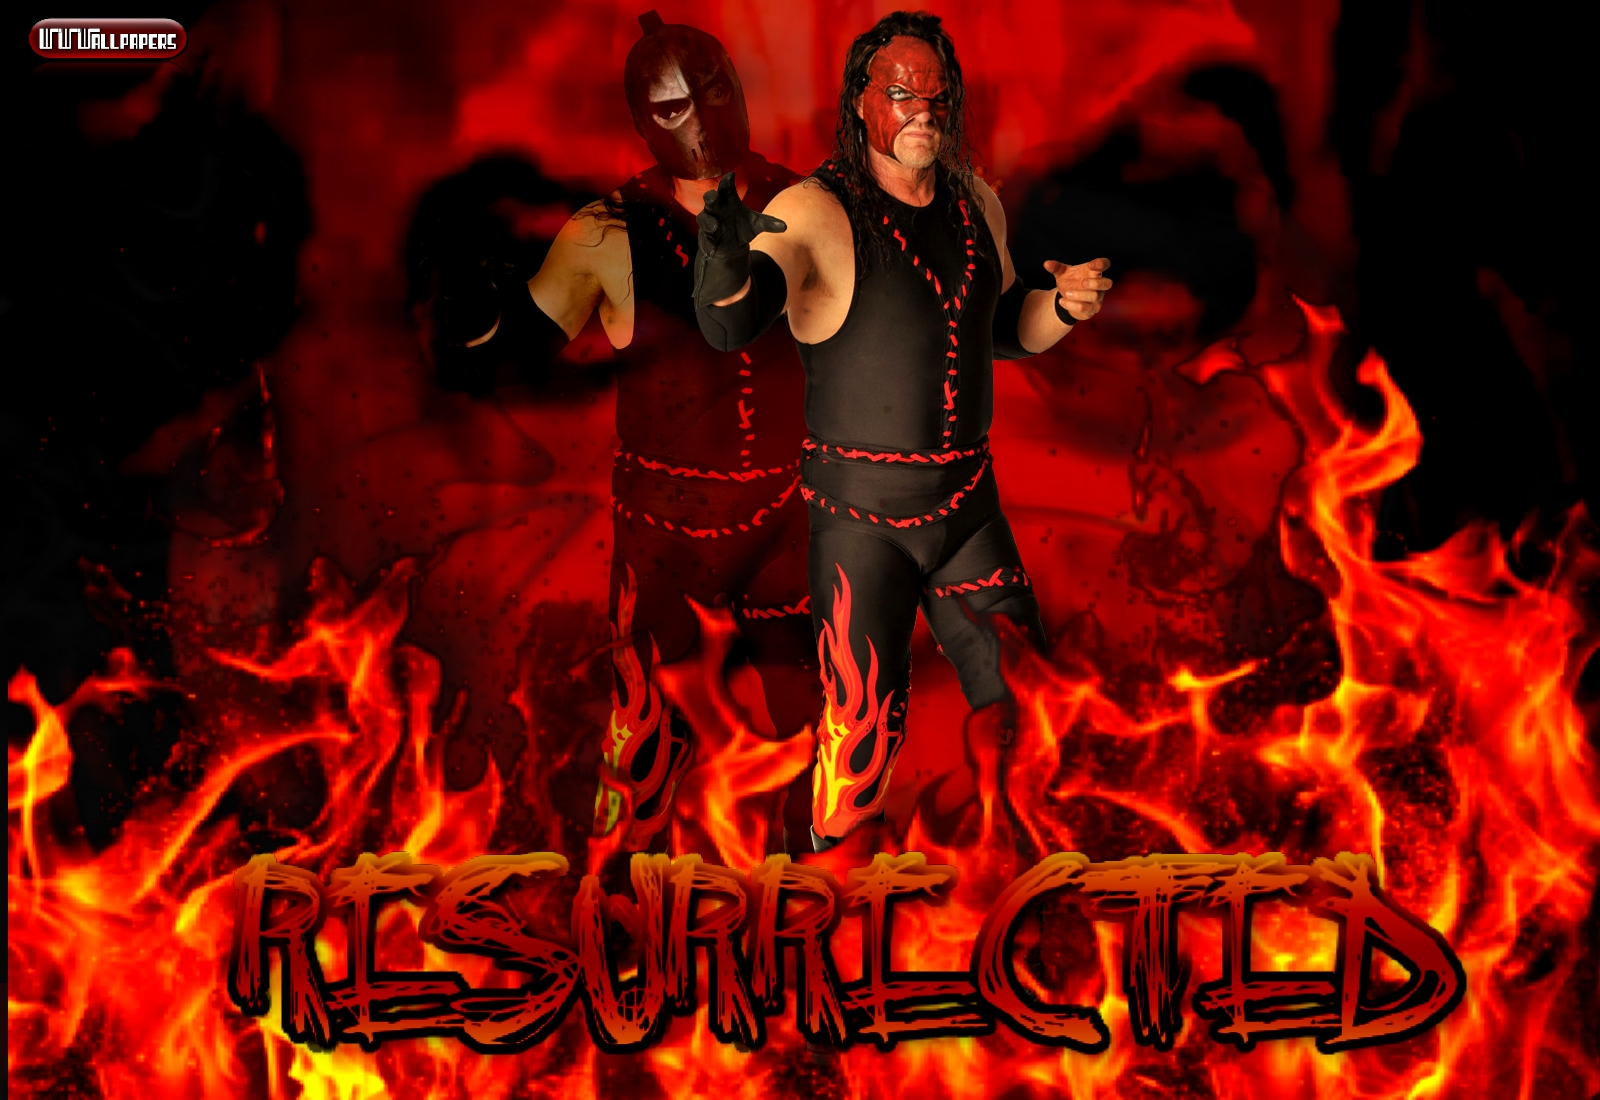 Download image Masked Kane PC, Android, iPhone and iPad. Wallpapers